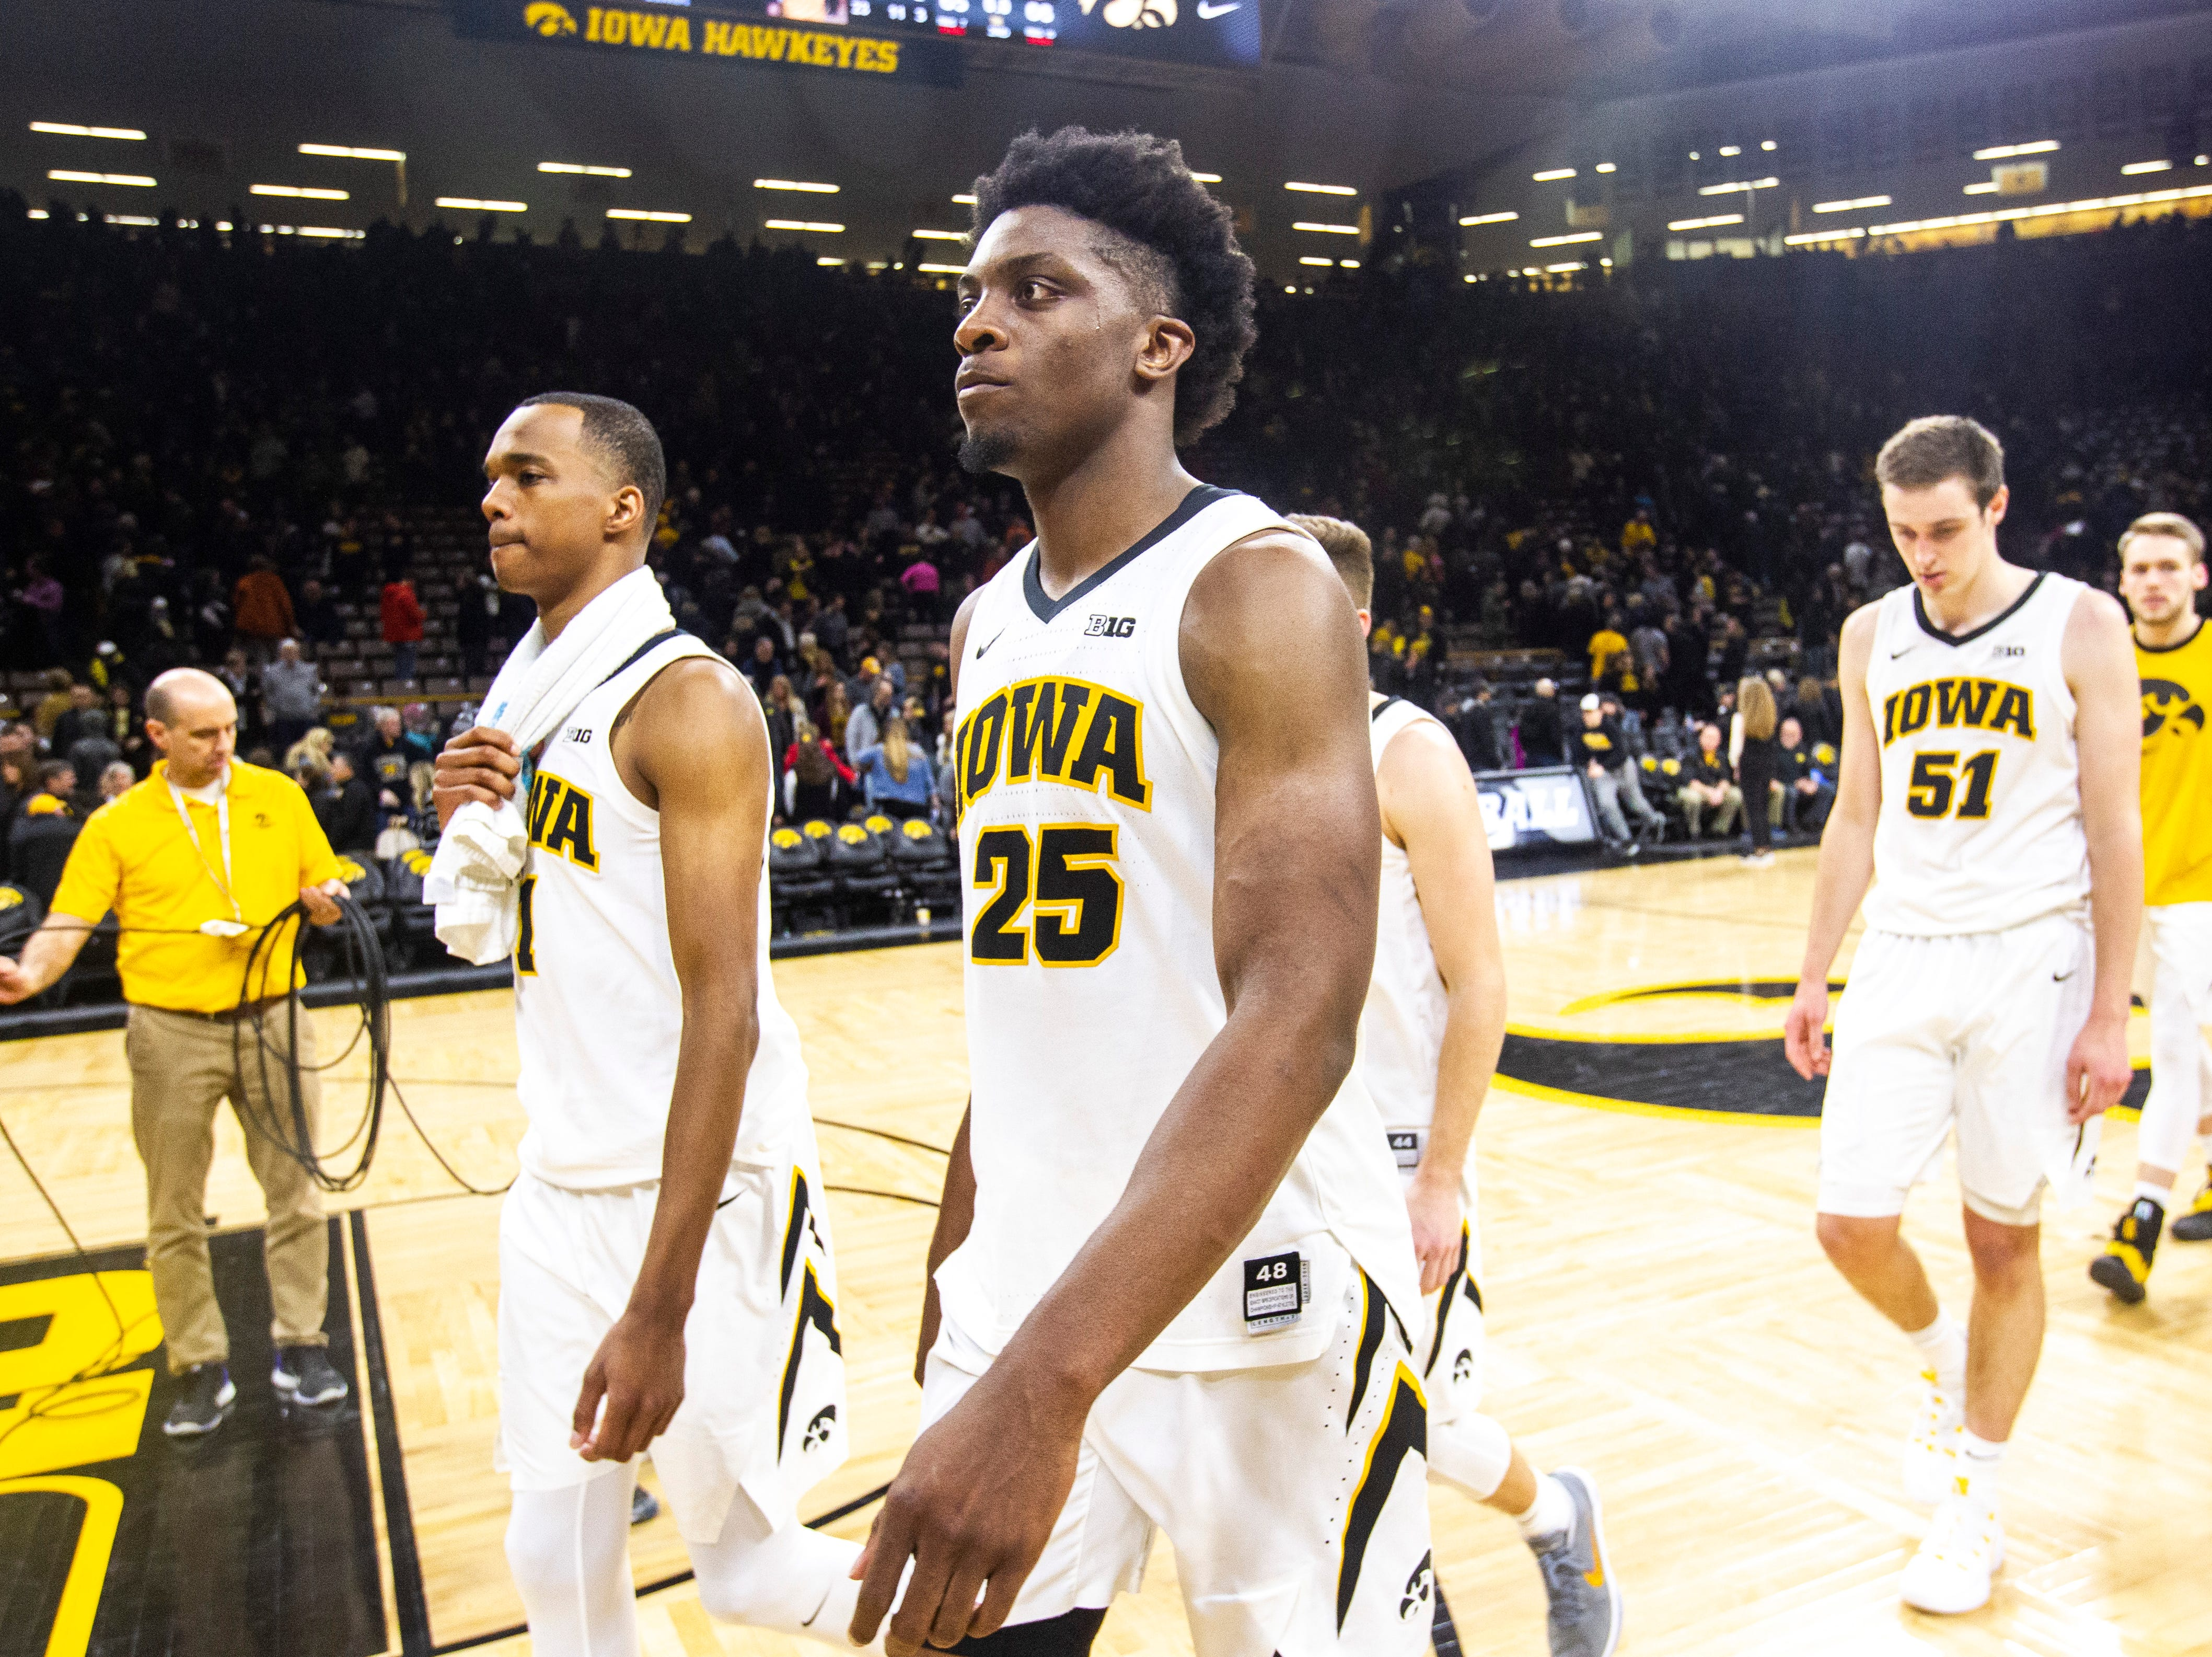 Iowa guard Maishe Dailey (1) Iowa forward Tyler Cook (25) and Iowa forward Nicholas Baer (51) walk off the court after a NCAA Big Ten Conference men's basketball game against Maryland on Tuesday, Feb. 19, 2019 at Carver-Hawkeye Arena in Iowa City, Iowa.